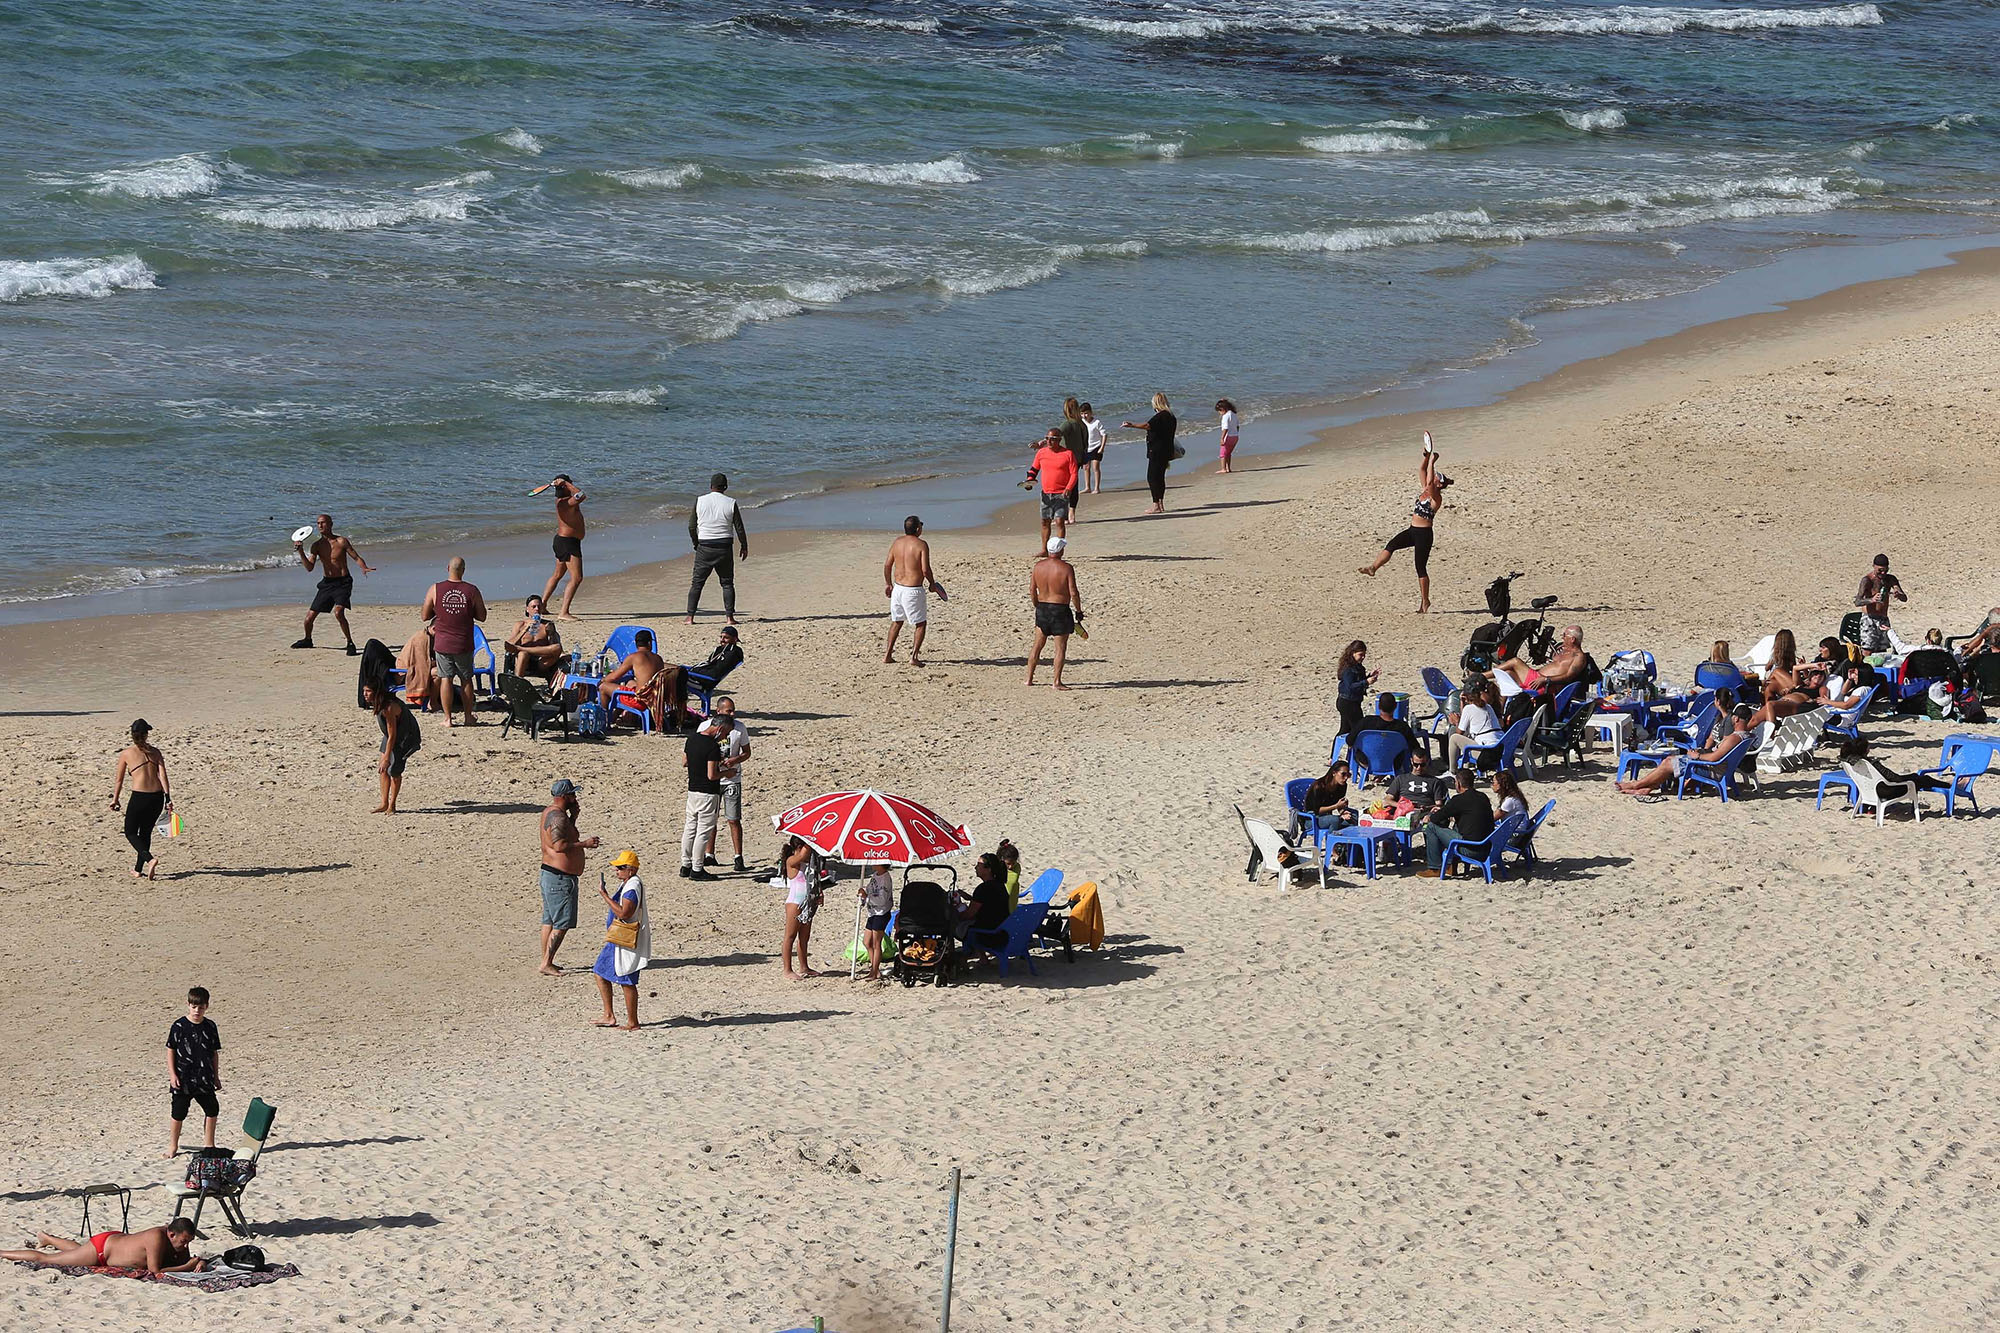 People enjoy themselves on a reopened beach in Tel Aviv, Israel, on February 13, 2021.